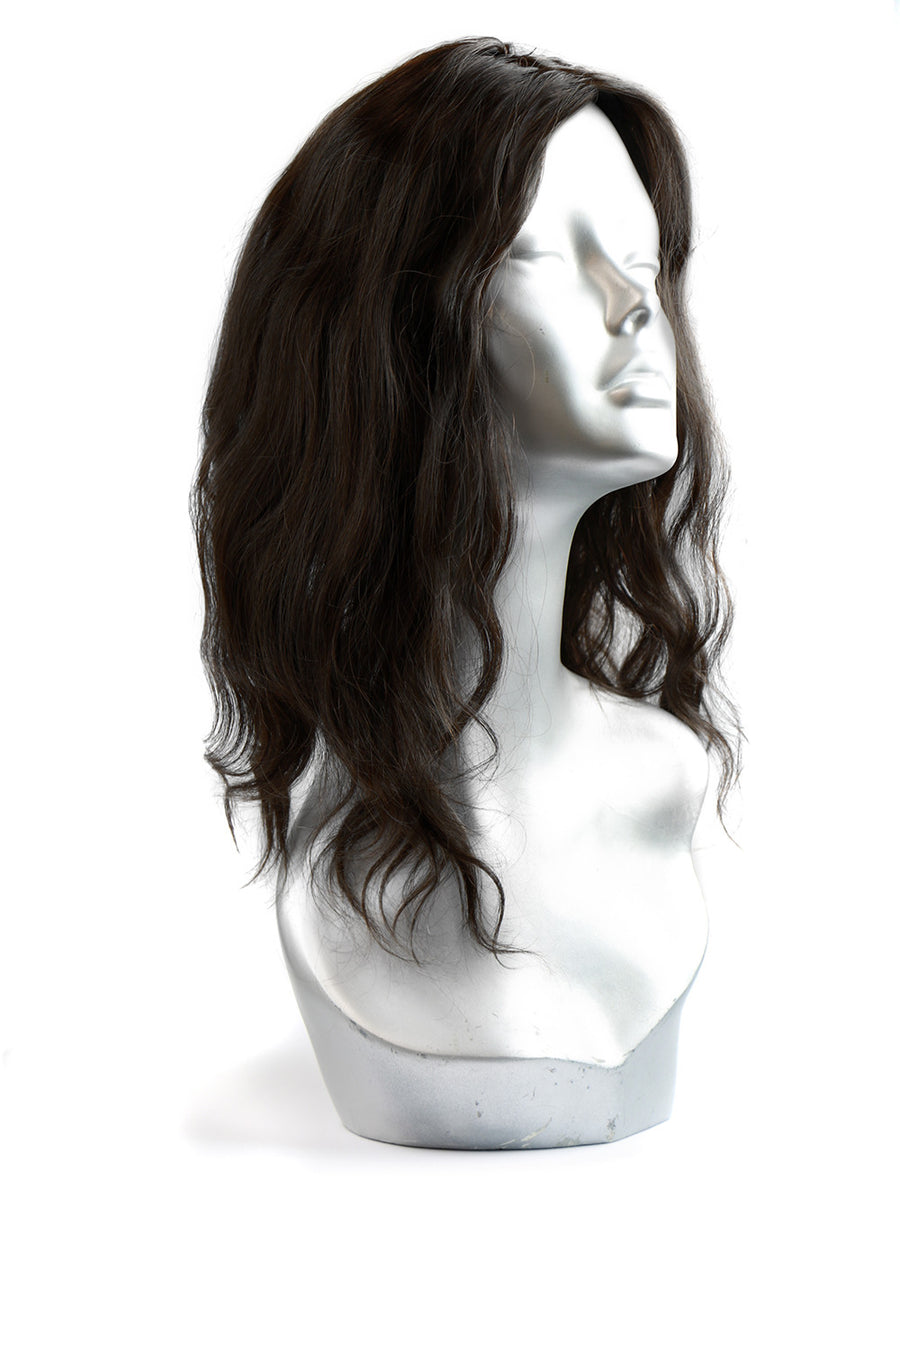 Best Quality Hair Extensions in Delhi